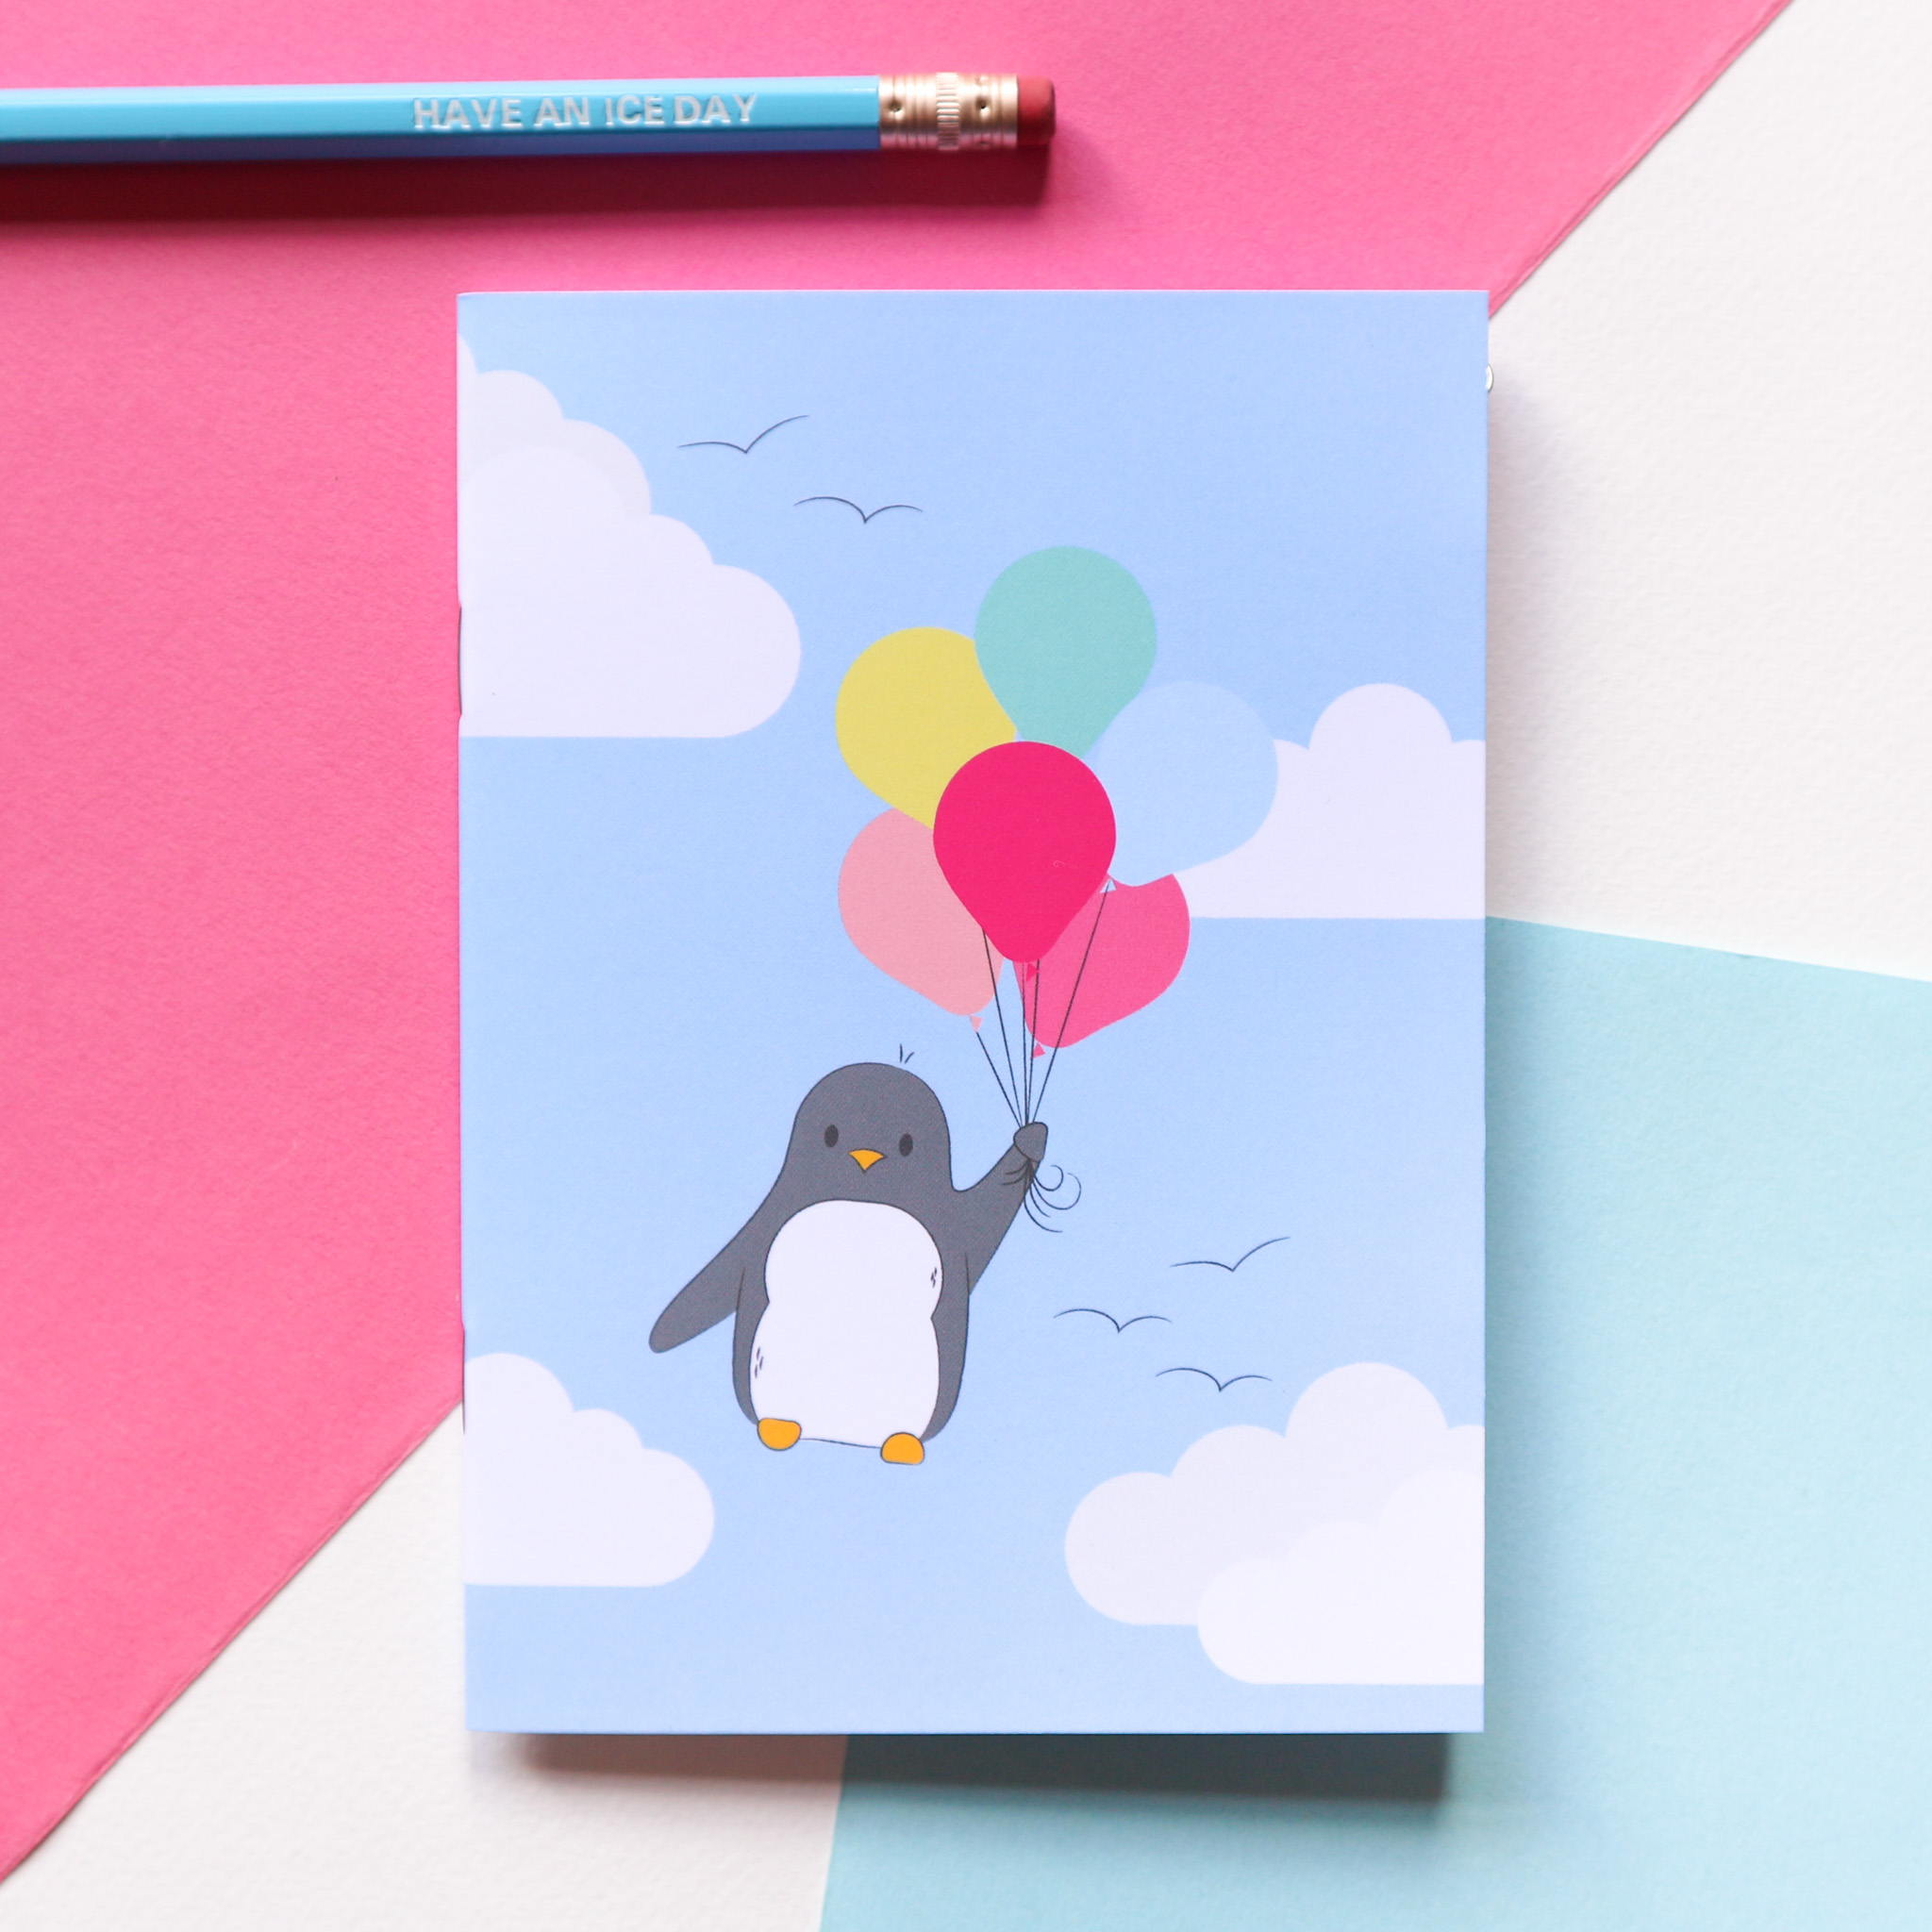 Penguin is floating away with a big bunch of balloons against a blue cloudy sky on this little notebook design. It is styled against a pink, blue and white background with a blue pencil.